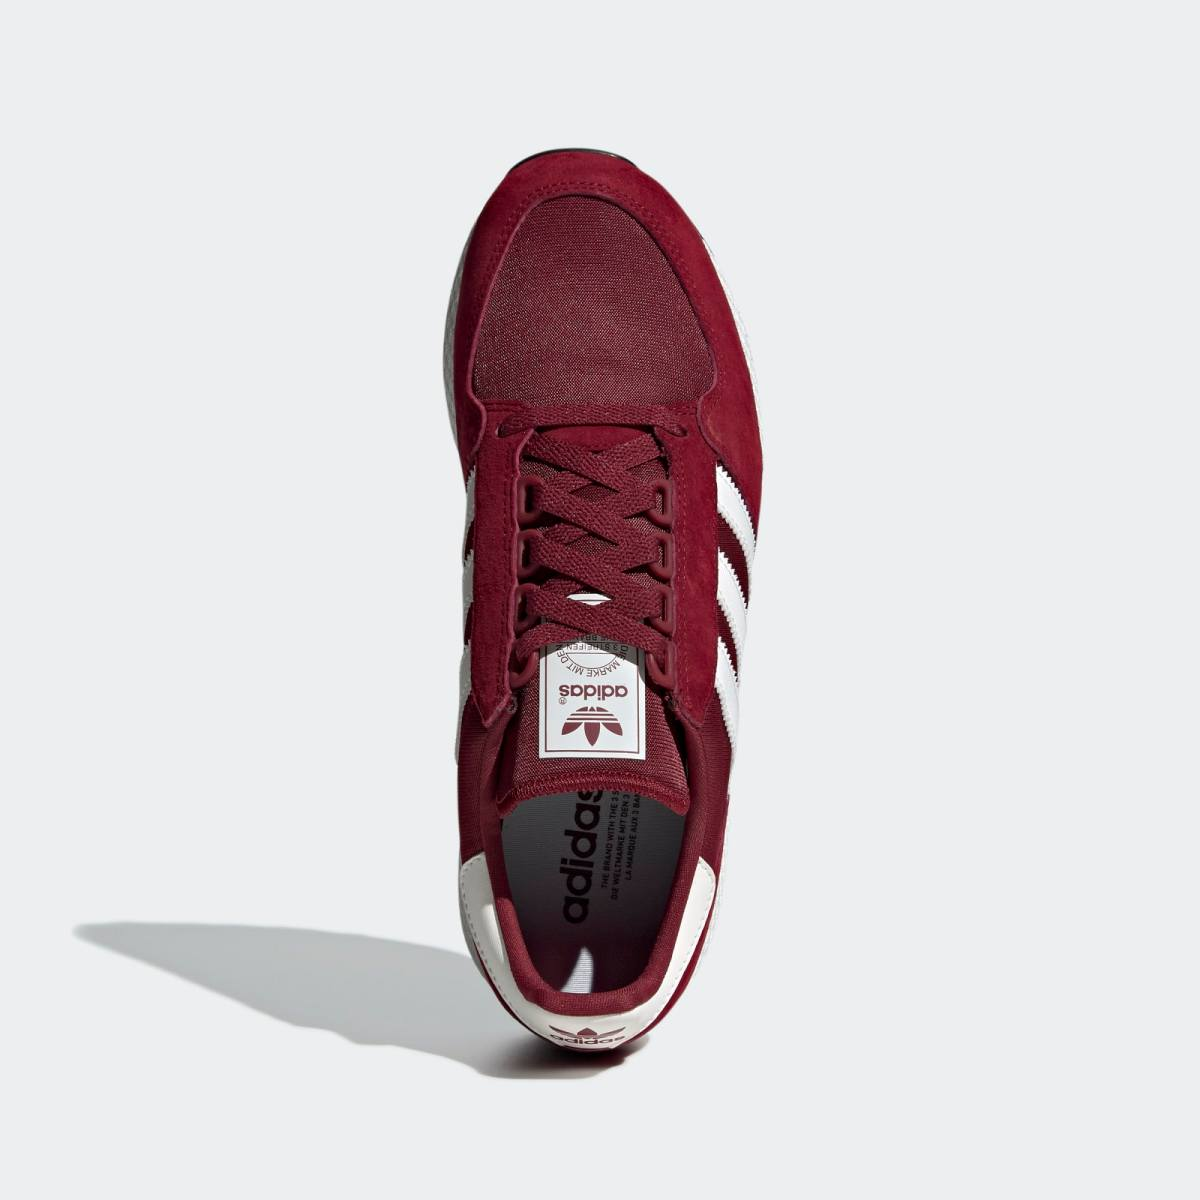 Forest_Grove_Shoes_Burgundy_CG5674_02_standard_hover